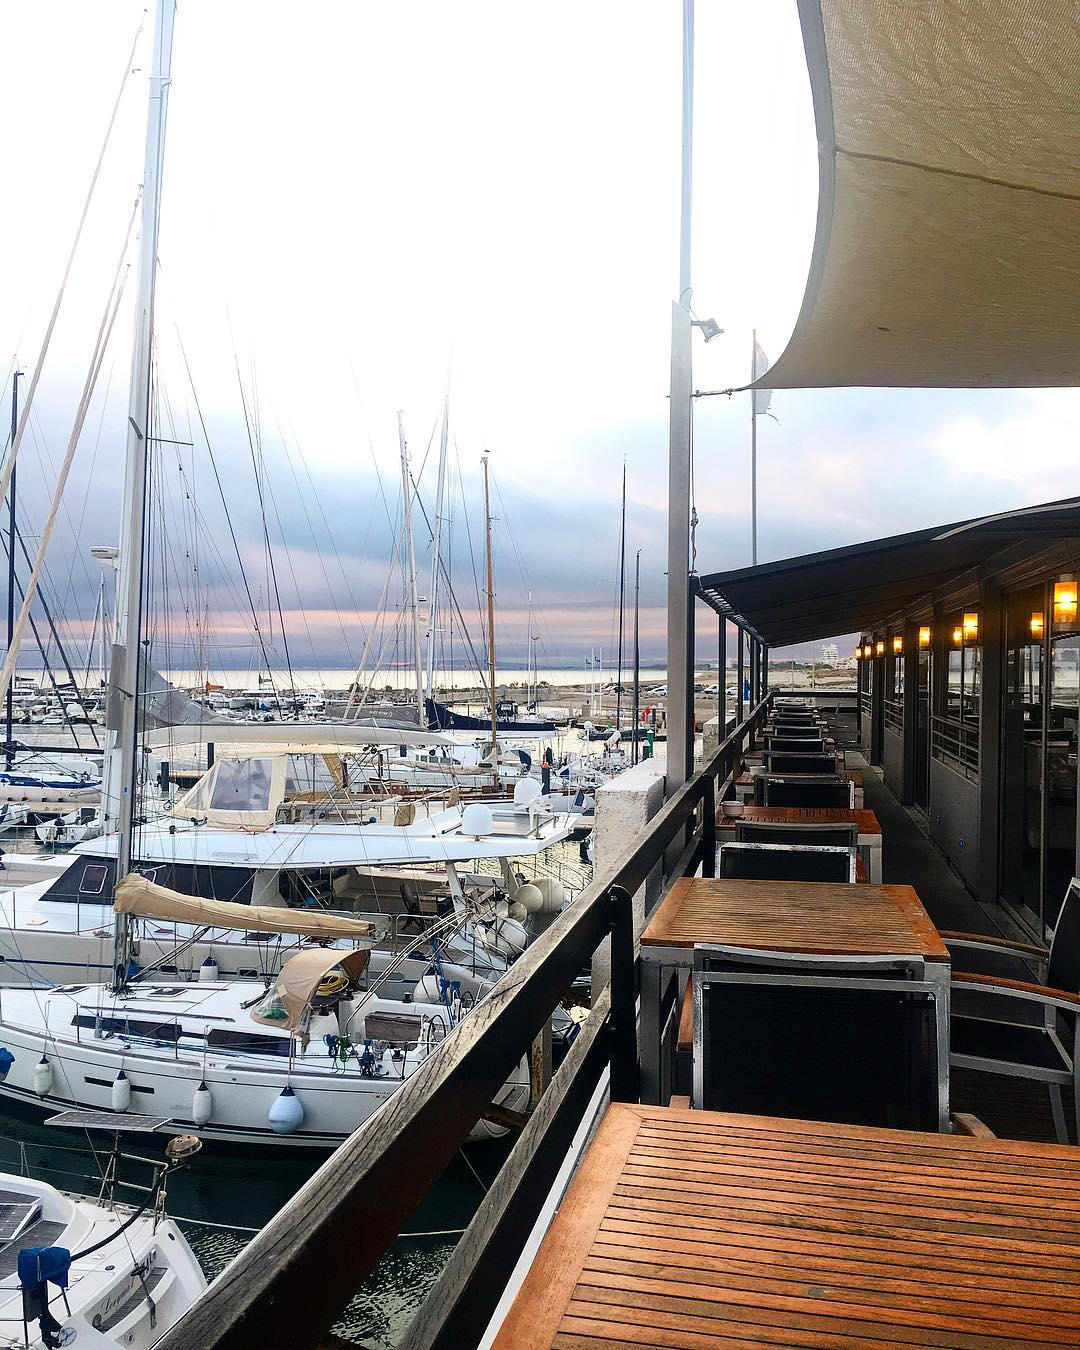 LOVE BOAT ?⚓️ Je ne me lasse pas de cette vue @restaurantleyachtclub . ➕YACHT CLUB • restaurant . ?La Grande Motte (34)?? .  _________________ #yachtclub #restaurantleyachtclub #labrigadeduyachtclub #yachtclublagrandemotte #food #foodlover #lgm #lagrandemotte  #restaurant #montpellier #pintademontpellier #yacht #foodblogger #blogfood #sunset #sunrise